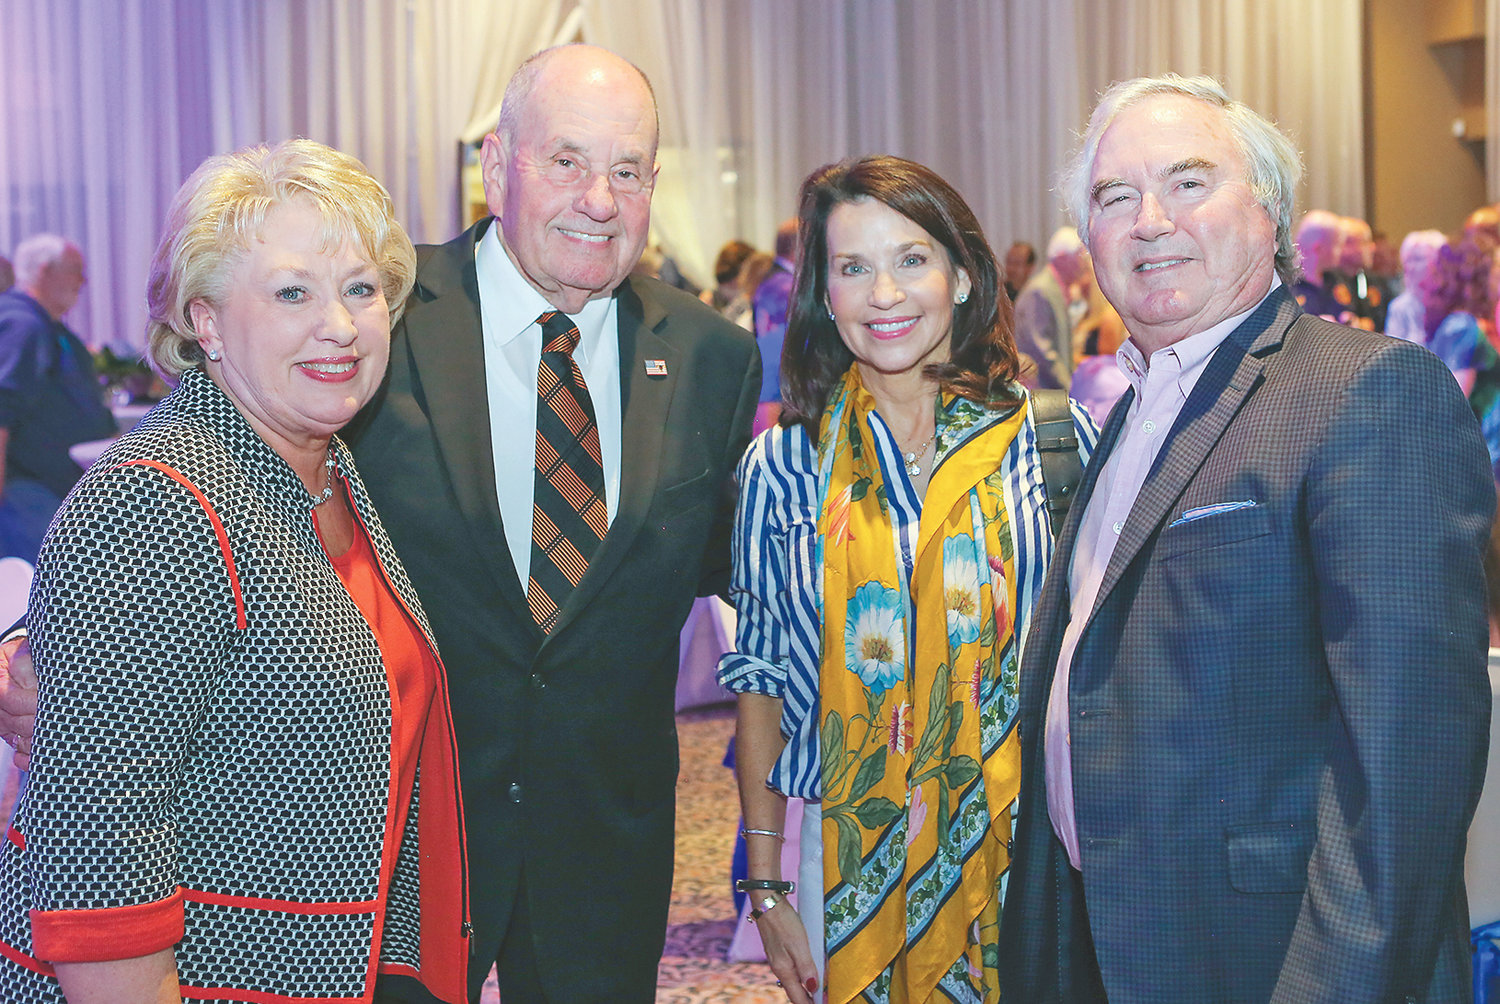 MAYOR TOM ROWLAND, and Cleveland's first lady Sandra Rowland, left, pose for a photo with Amy Banks and retiring City Councilman-At-Large Richard Banks at a reception held for the mayor at the Museum Center in August.